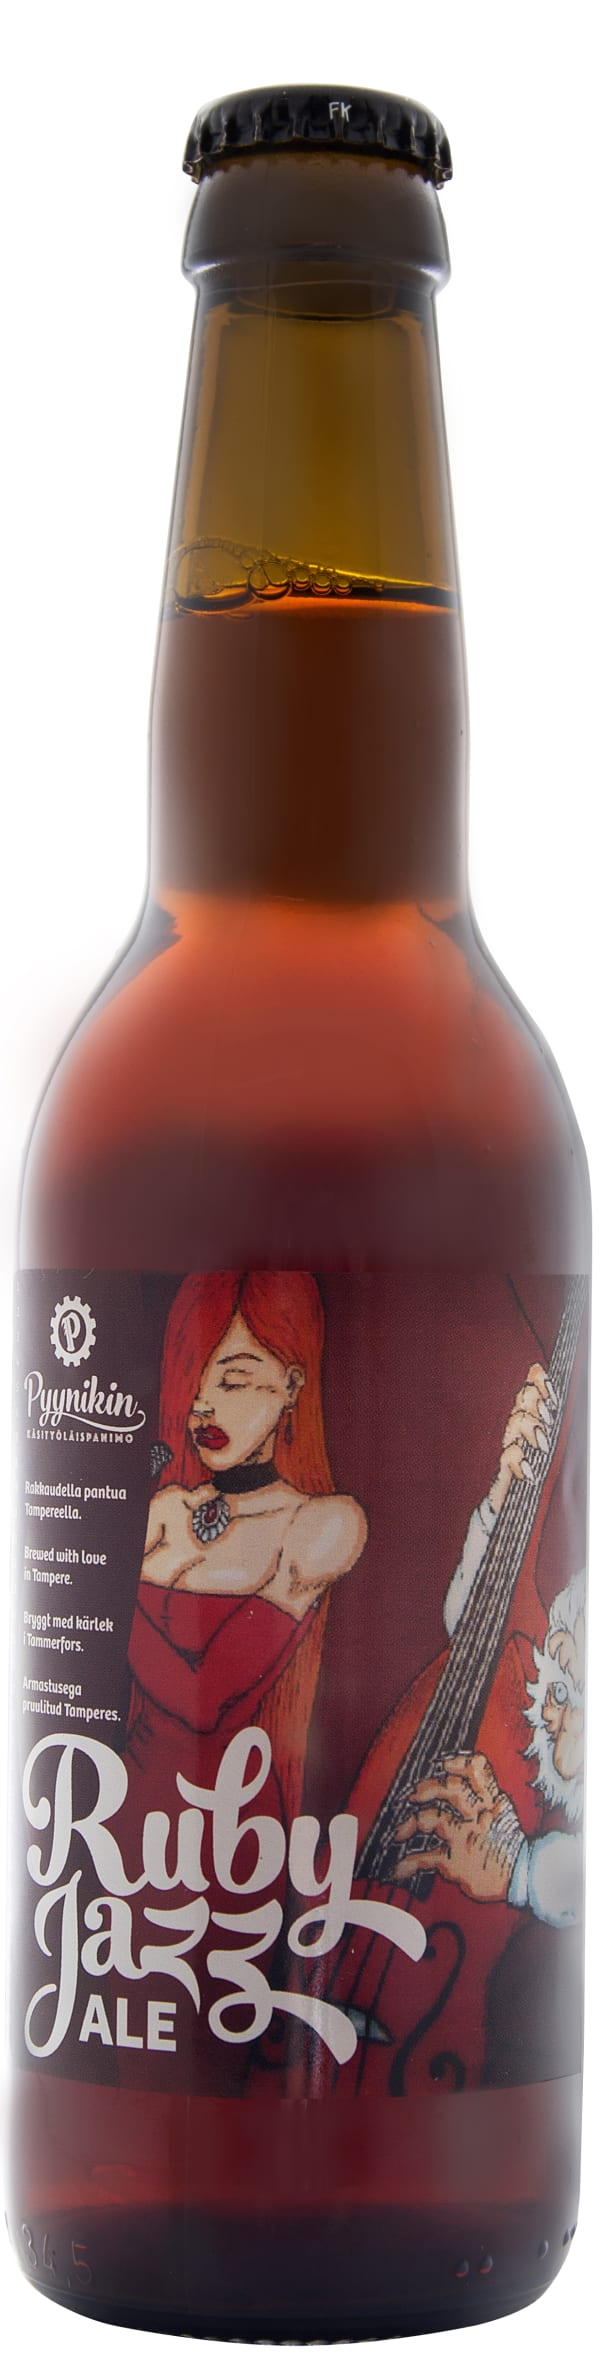 Pyynikin Ruby Jazz Ale